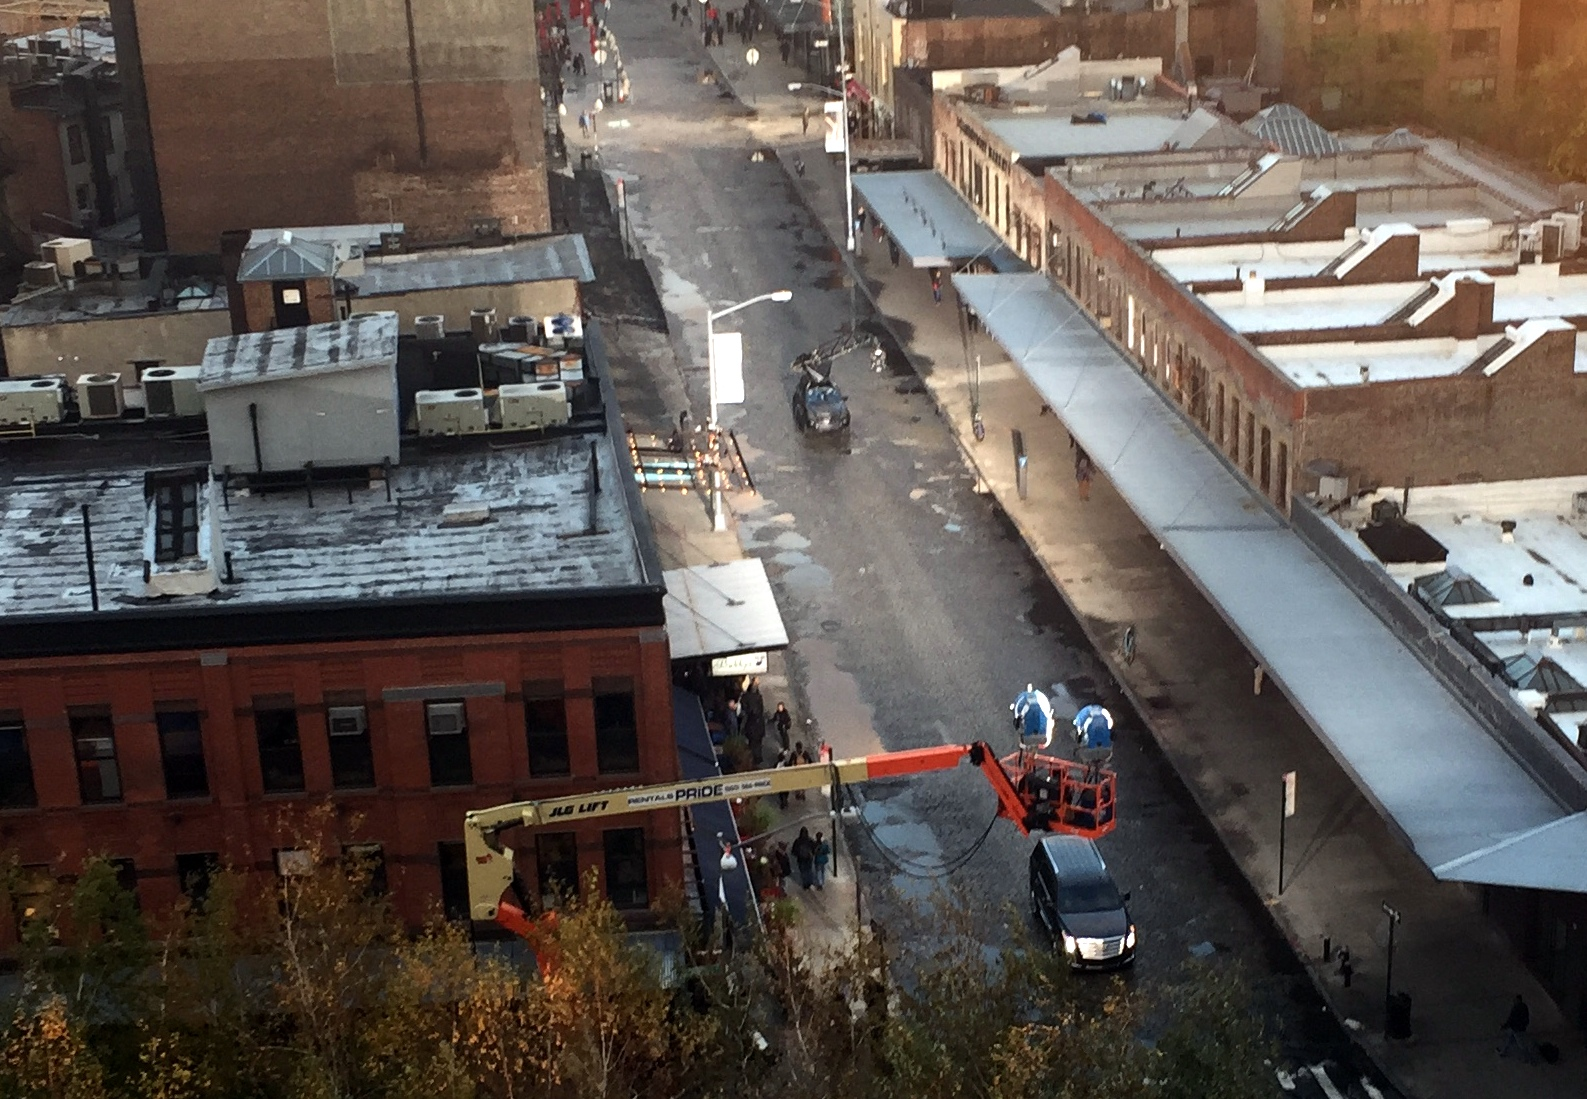 11-12 gansevoort movie set